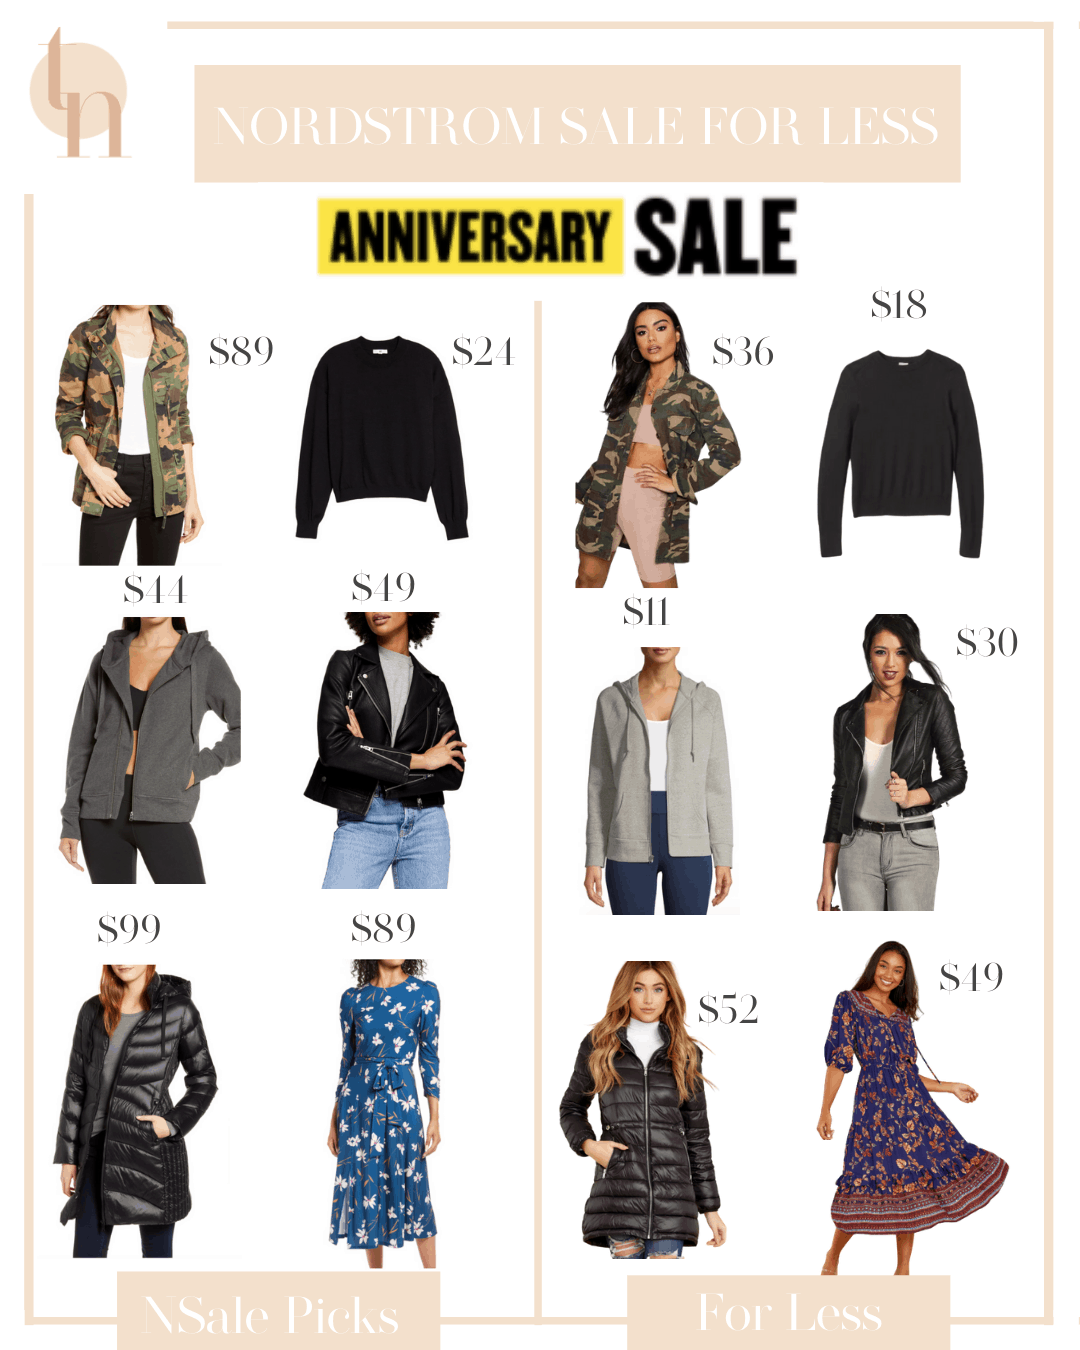 Nordstrom Anniversary Sale by popular Dallas fashion blog, Glamorous Versatility: collage image of a camo jacket, grey activewear jacket, black leather motto jacket, black sweater, long black bubble coat, and a floral midi dress.